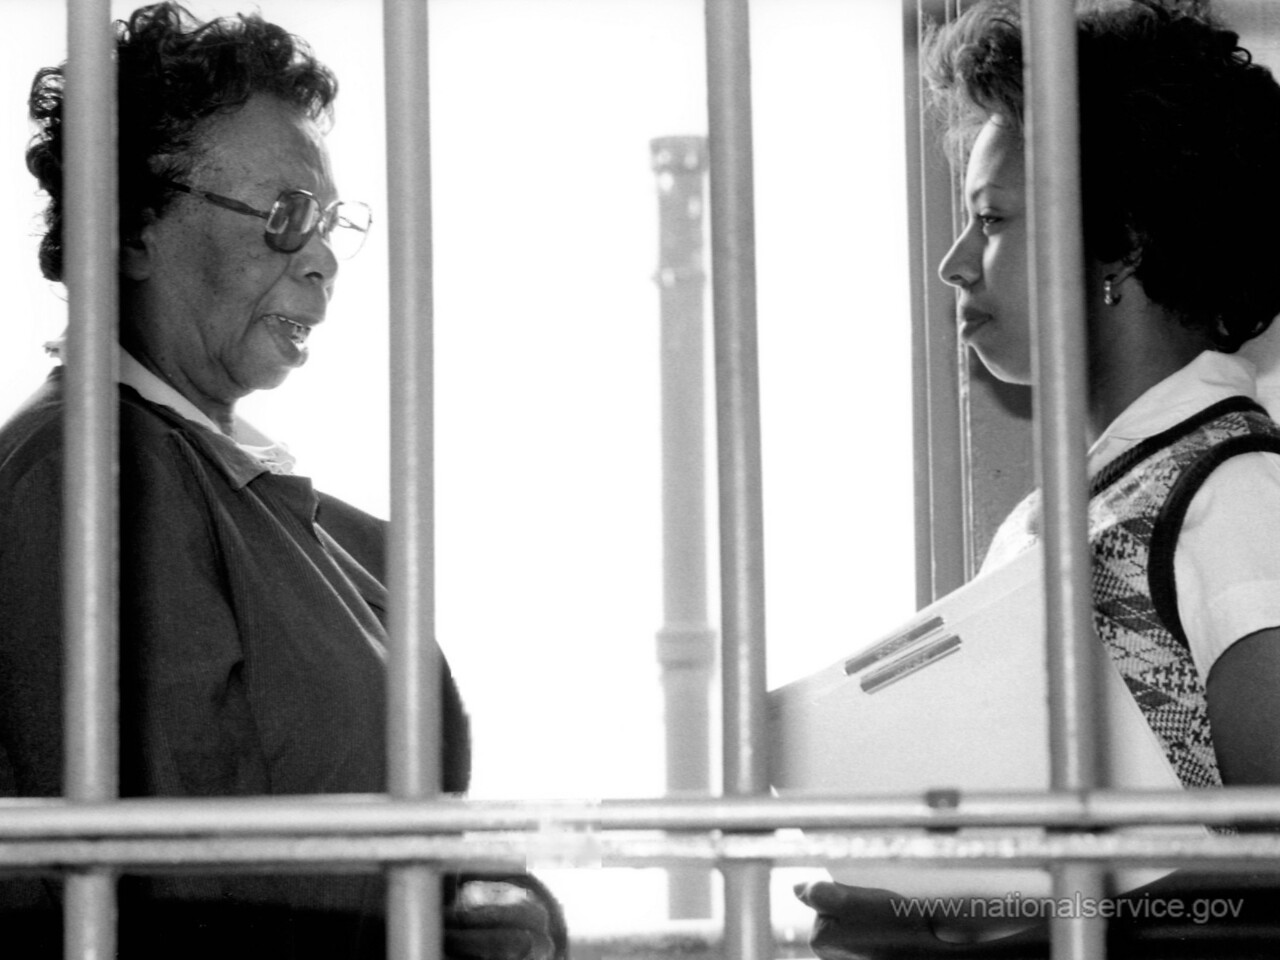 Assigned to the Missouri Division of Corrections in July 1980, VISTA member Rose T. Evans, 69, counsels inmate Linda Jack at Renz Correctional Center in Cedar City. Evans, a retired school teacher, recruits and trains community volunteers and inmates to provide activities in music, dance, sewing, crafts, cosmetology, and correspondence for the prisoners. (© 1980 Corporation for National and Community Service - Office of Public Affairs)